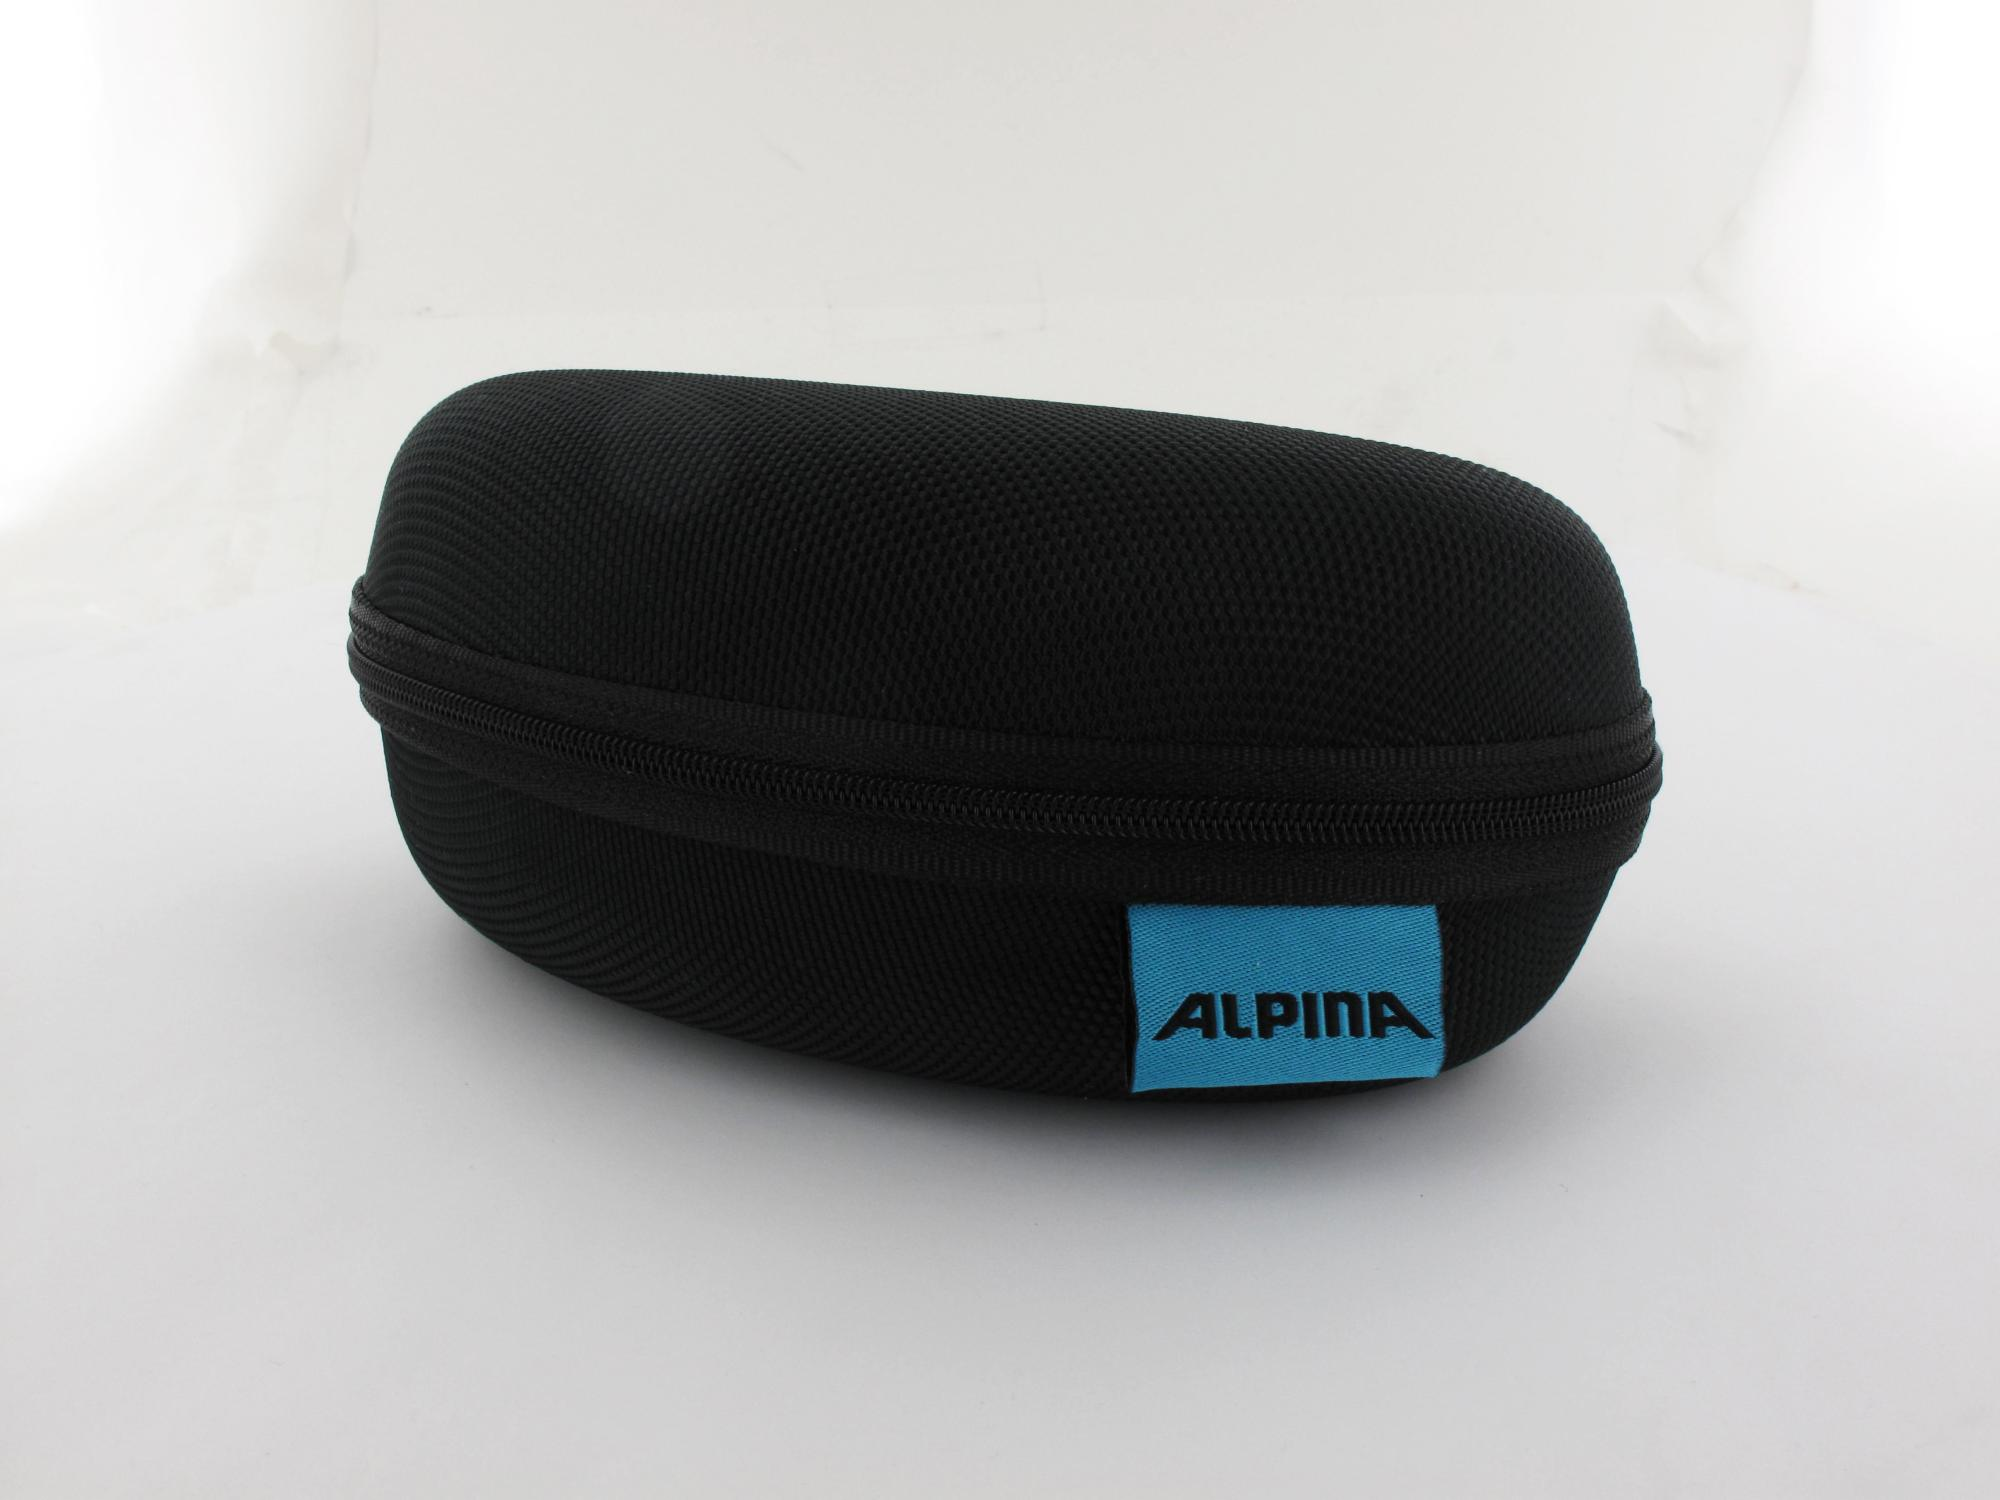 ALPINA | Twist Five Shield RL VL+ A8589 131 140 | black matt / VL+ black